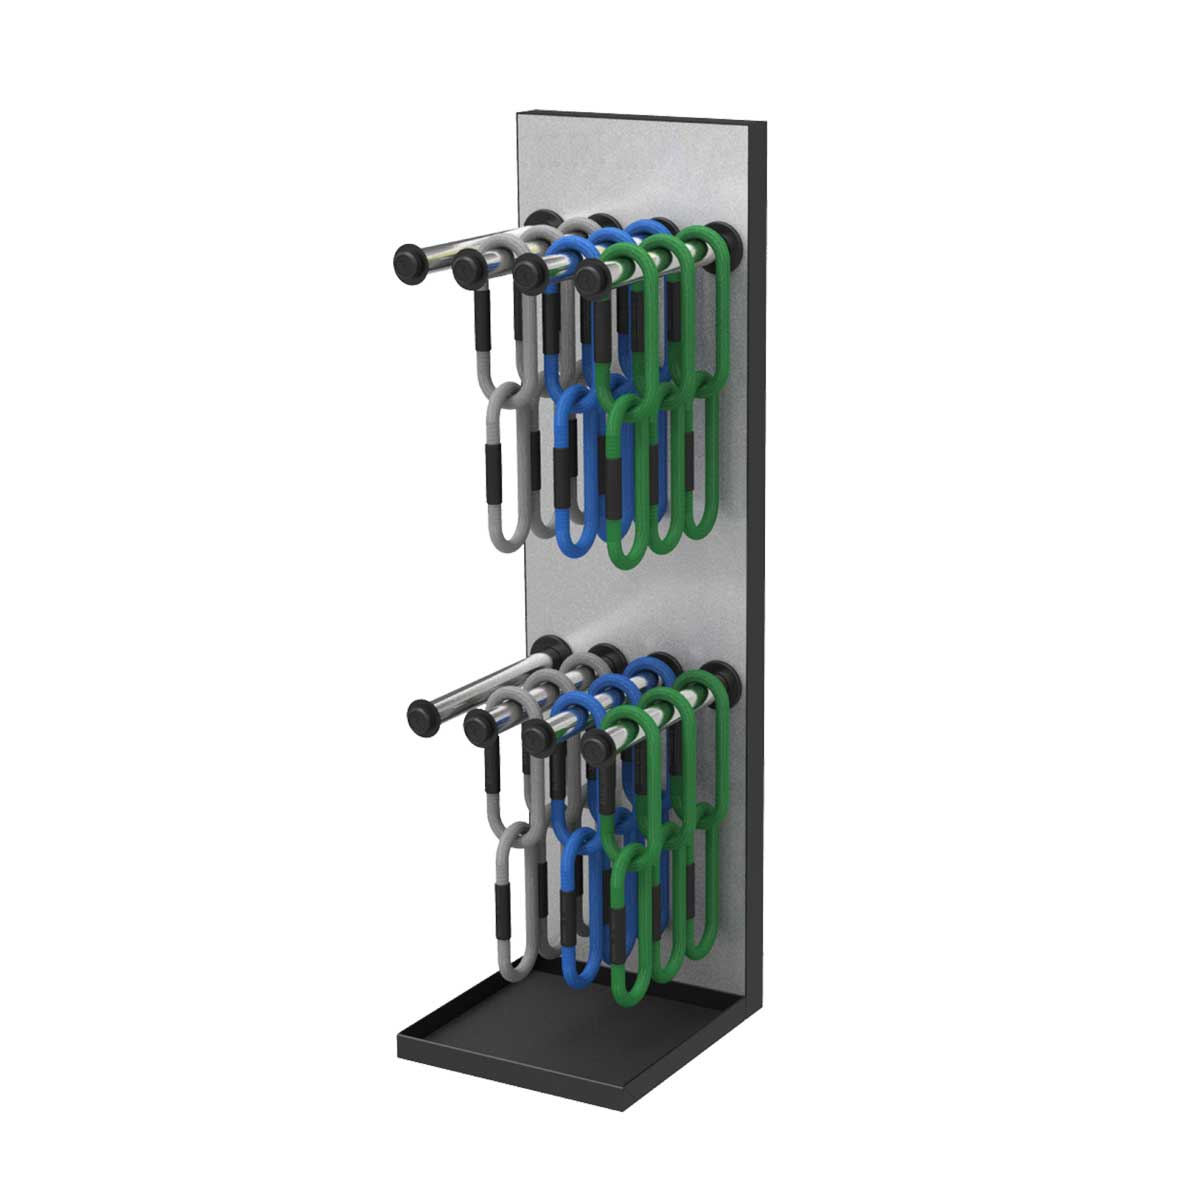 Reax Chain Two Display Storage